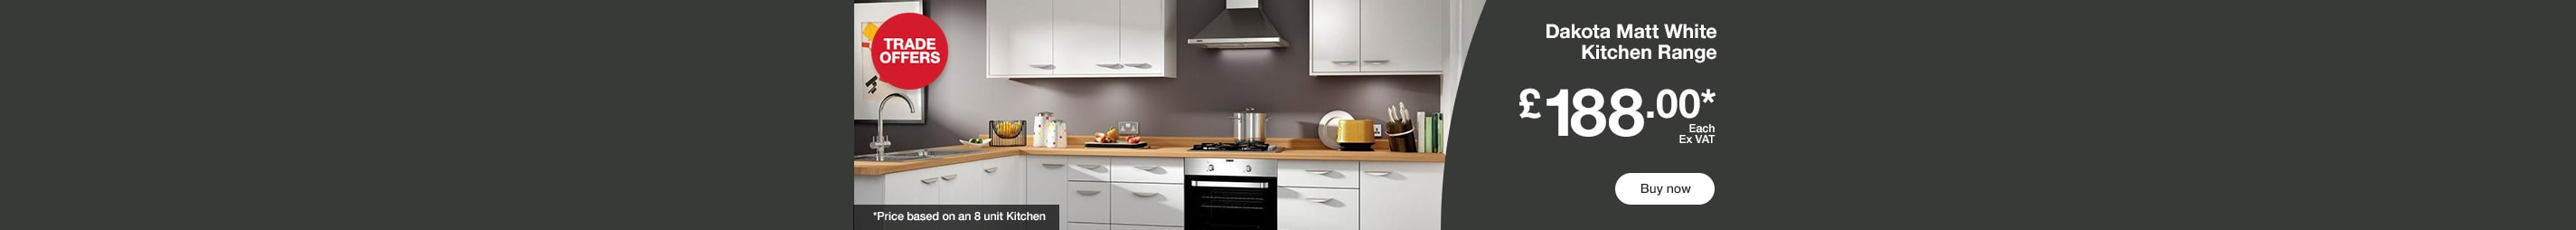 Dakota Kitchen Range £188.00